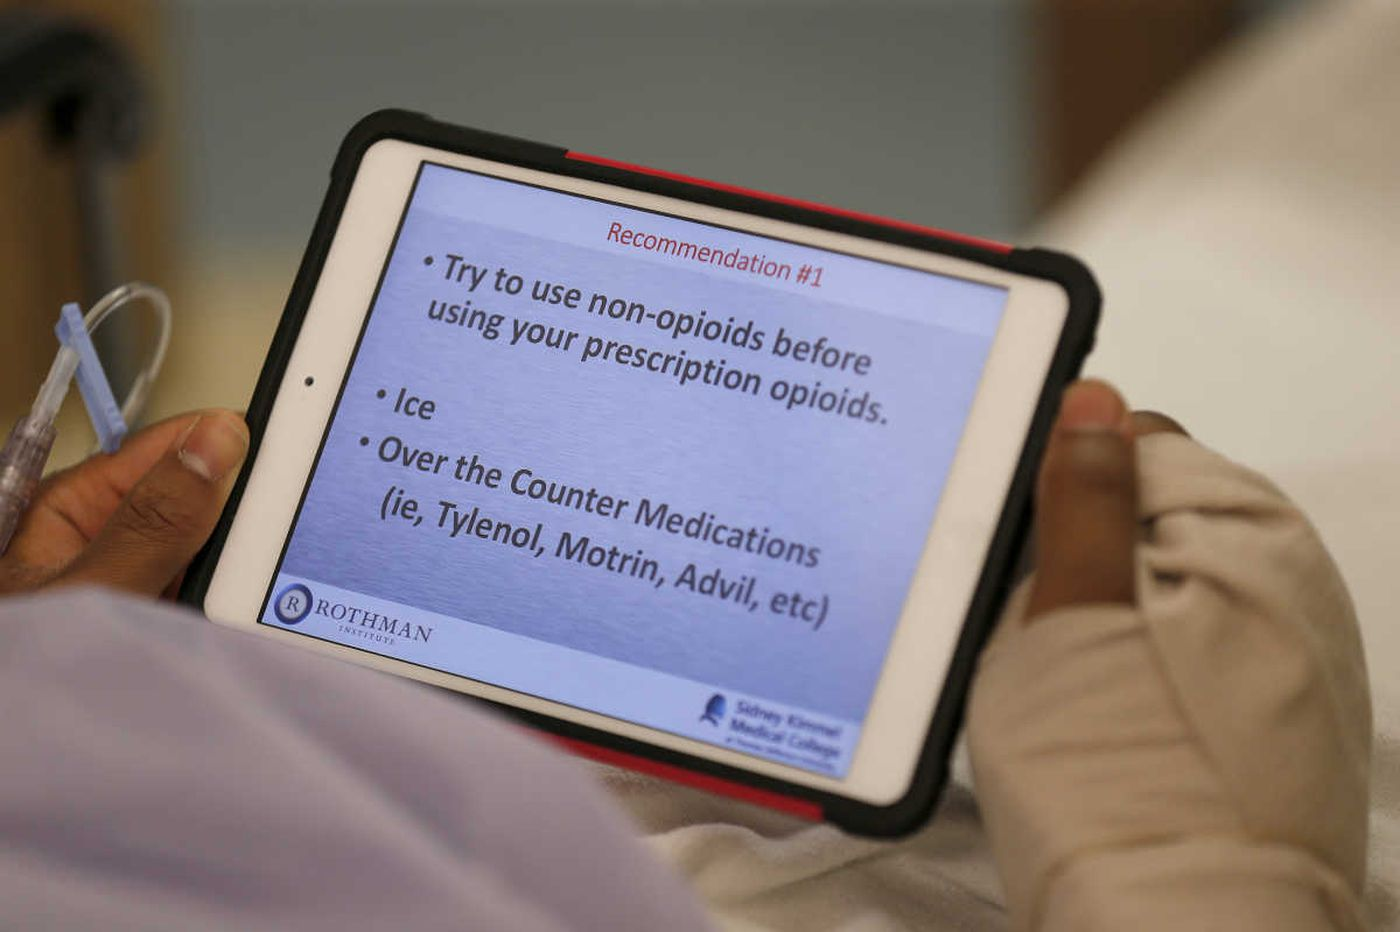 Here's something that curbs opioid use: Pre-surgical counseling